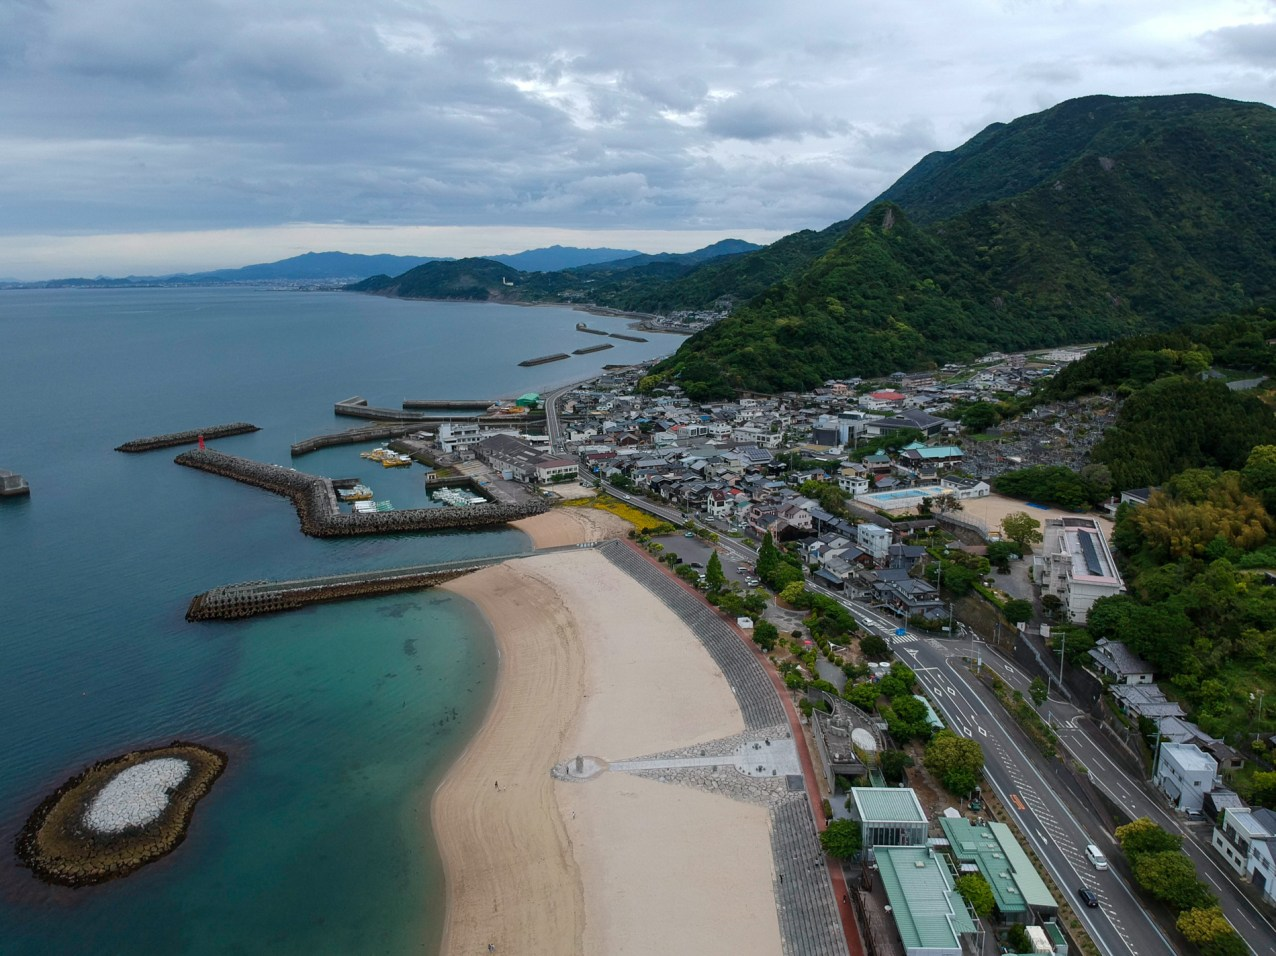 On the way north on the west coast of Shikoku, passing through smaller towns like Iyo-Kaminada.